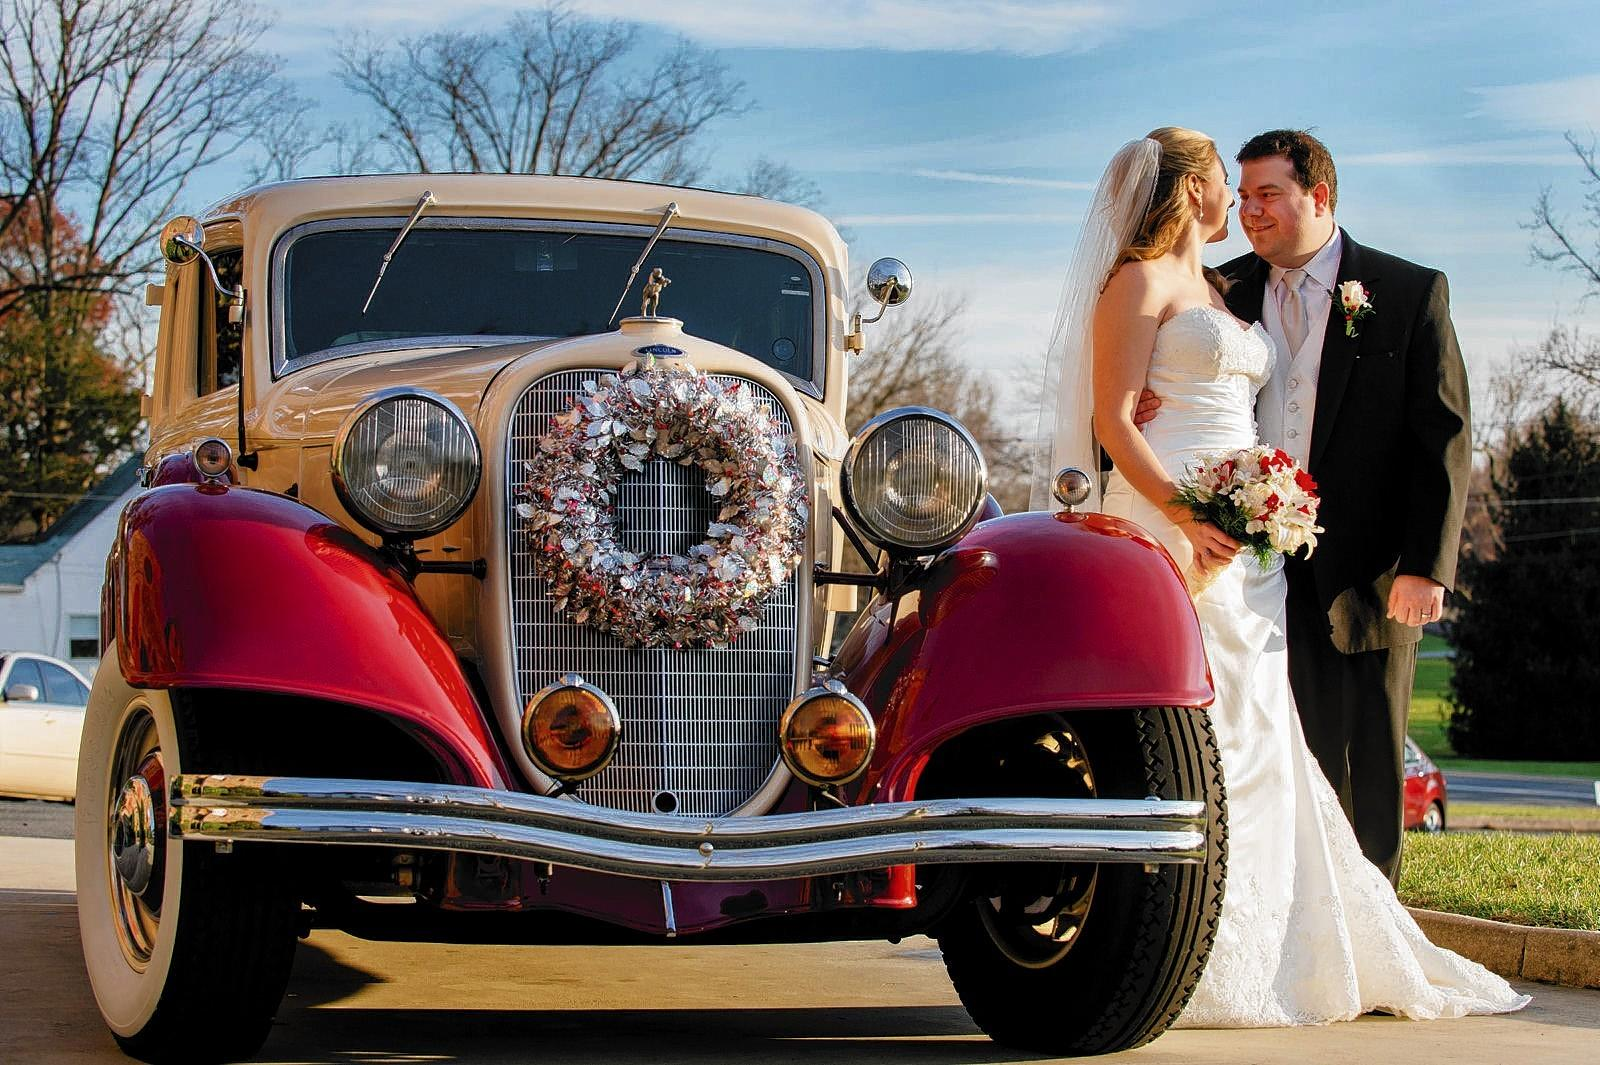 Michelle Zilka and Joshua Mawhinney left their wedding in a 1934 classic Lincoln.